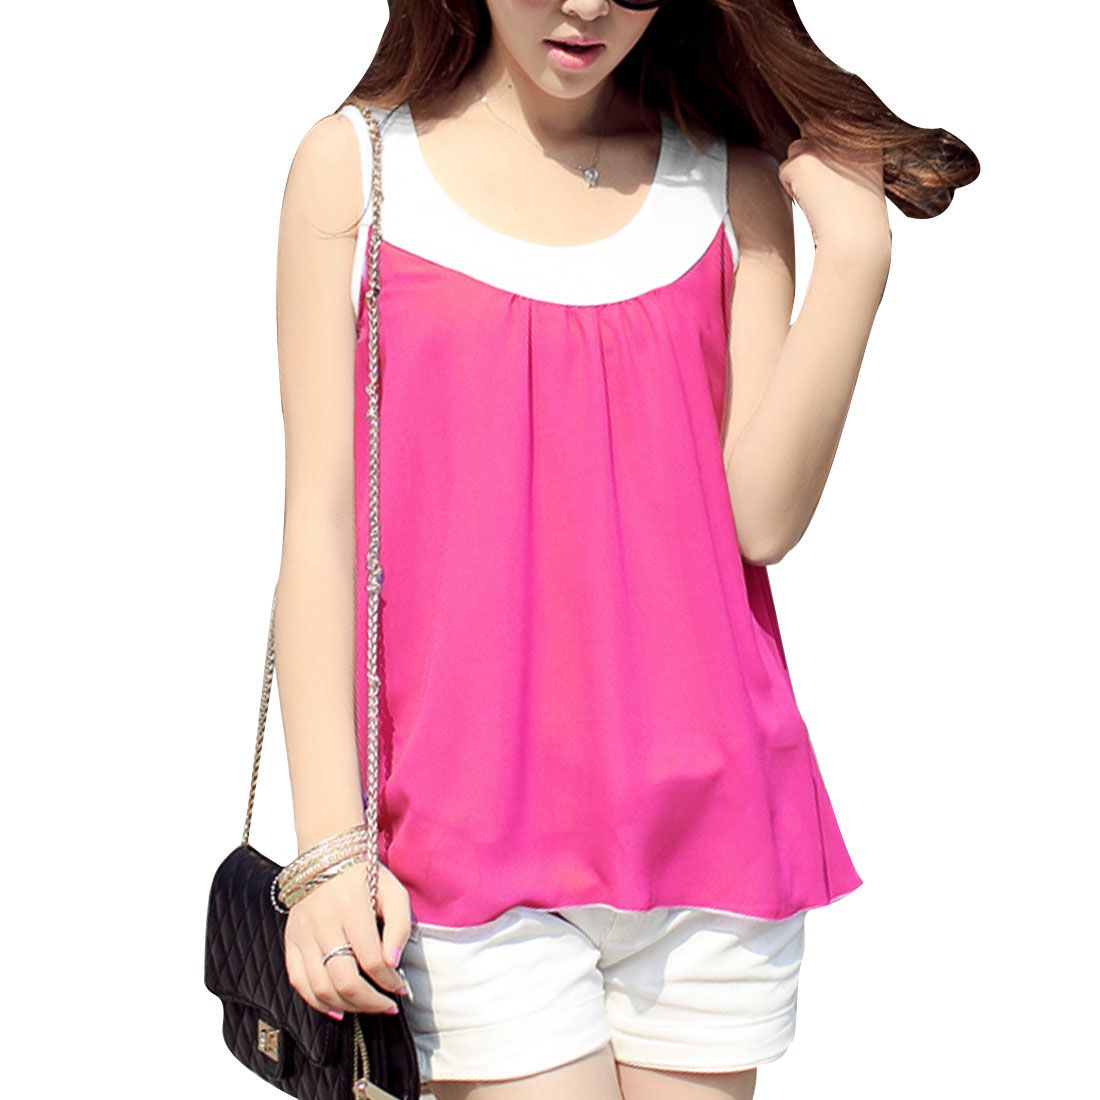 Ladies Chic Patchwork Scoop Neck Sleeveless Flare Hem Fuchsia Chiffon Tops S